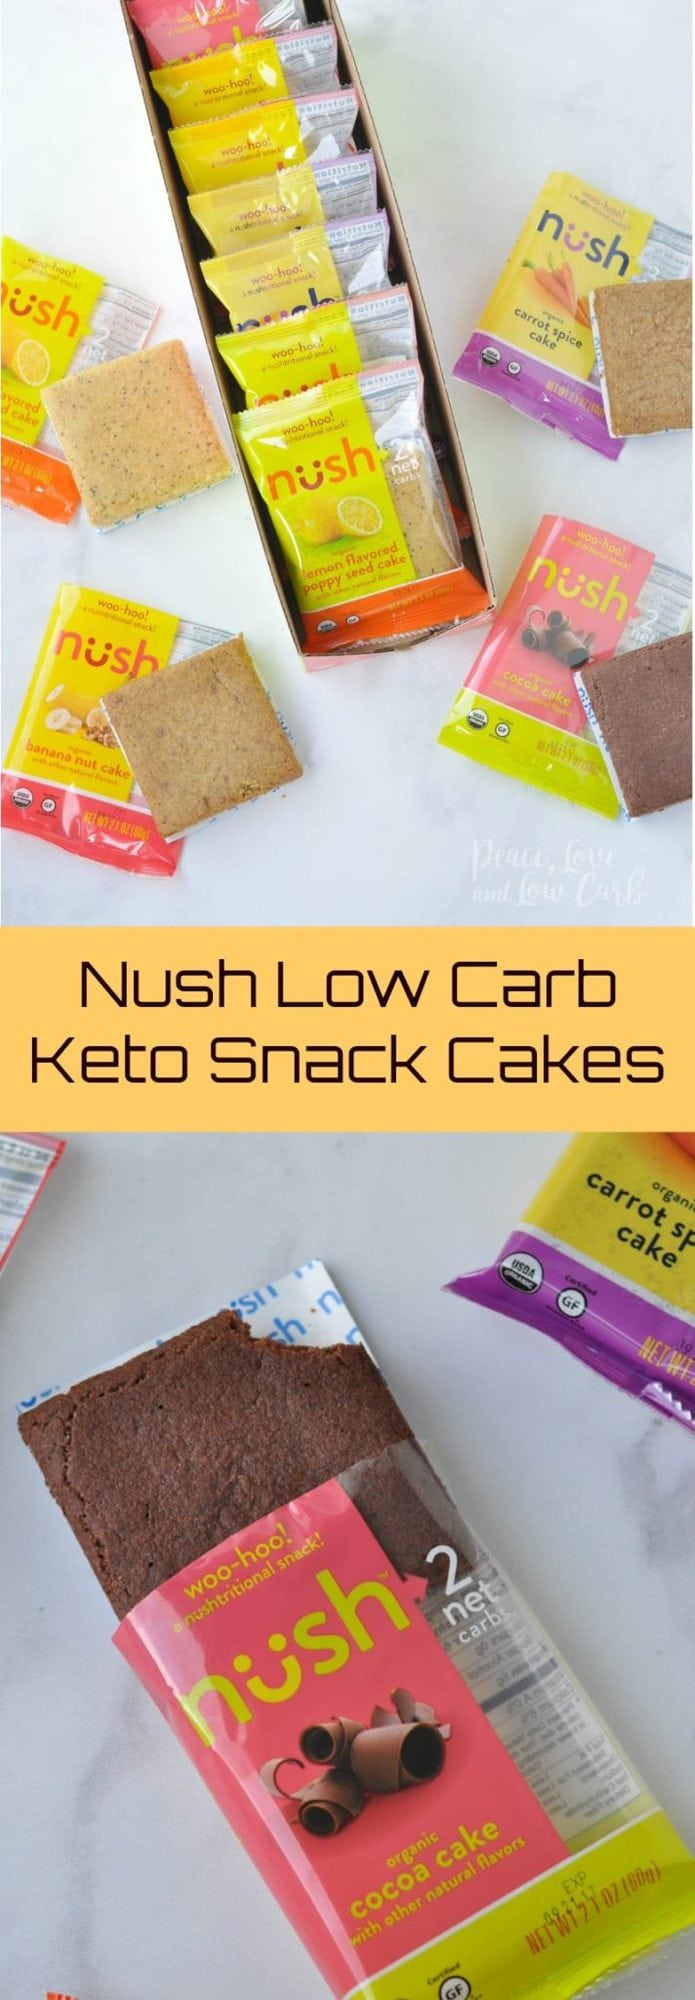 Nush Low Carb Keto Snack Cakes - Peace Love and Low Carb